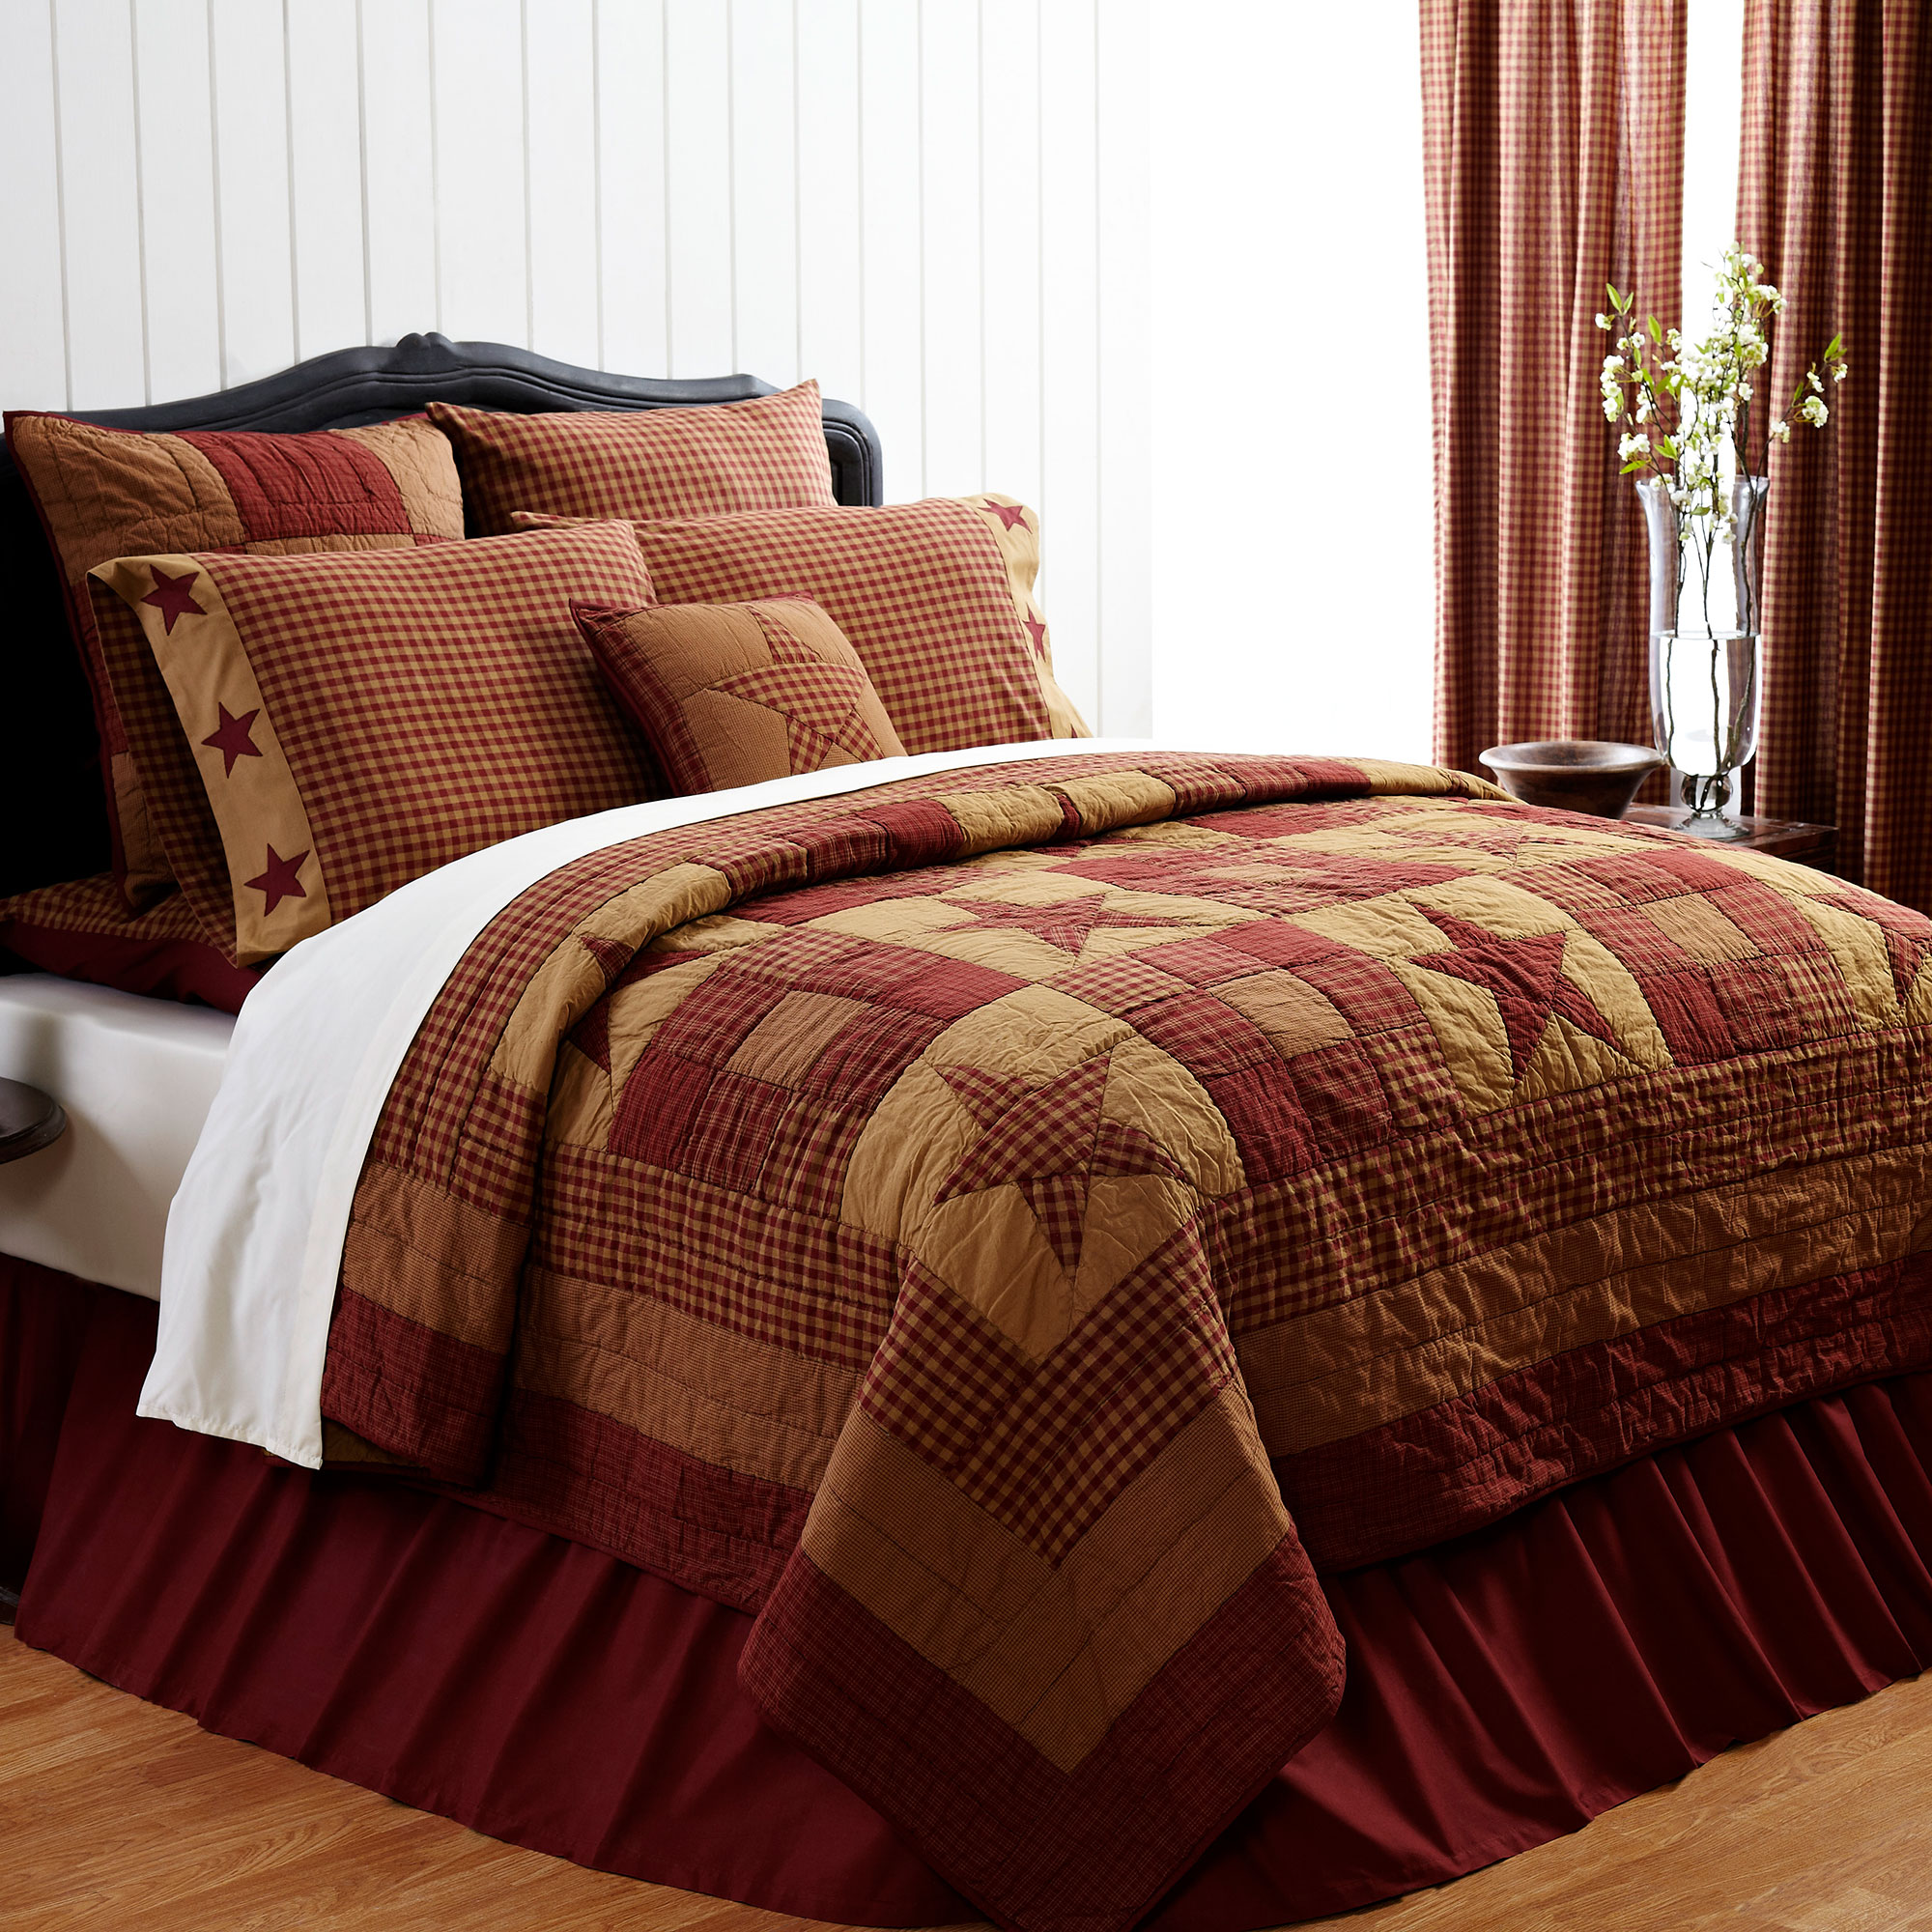 Ninepatch Star 6 Piece Burgundy Tan Country Quilt Set